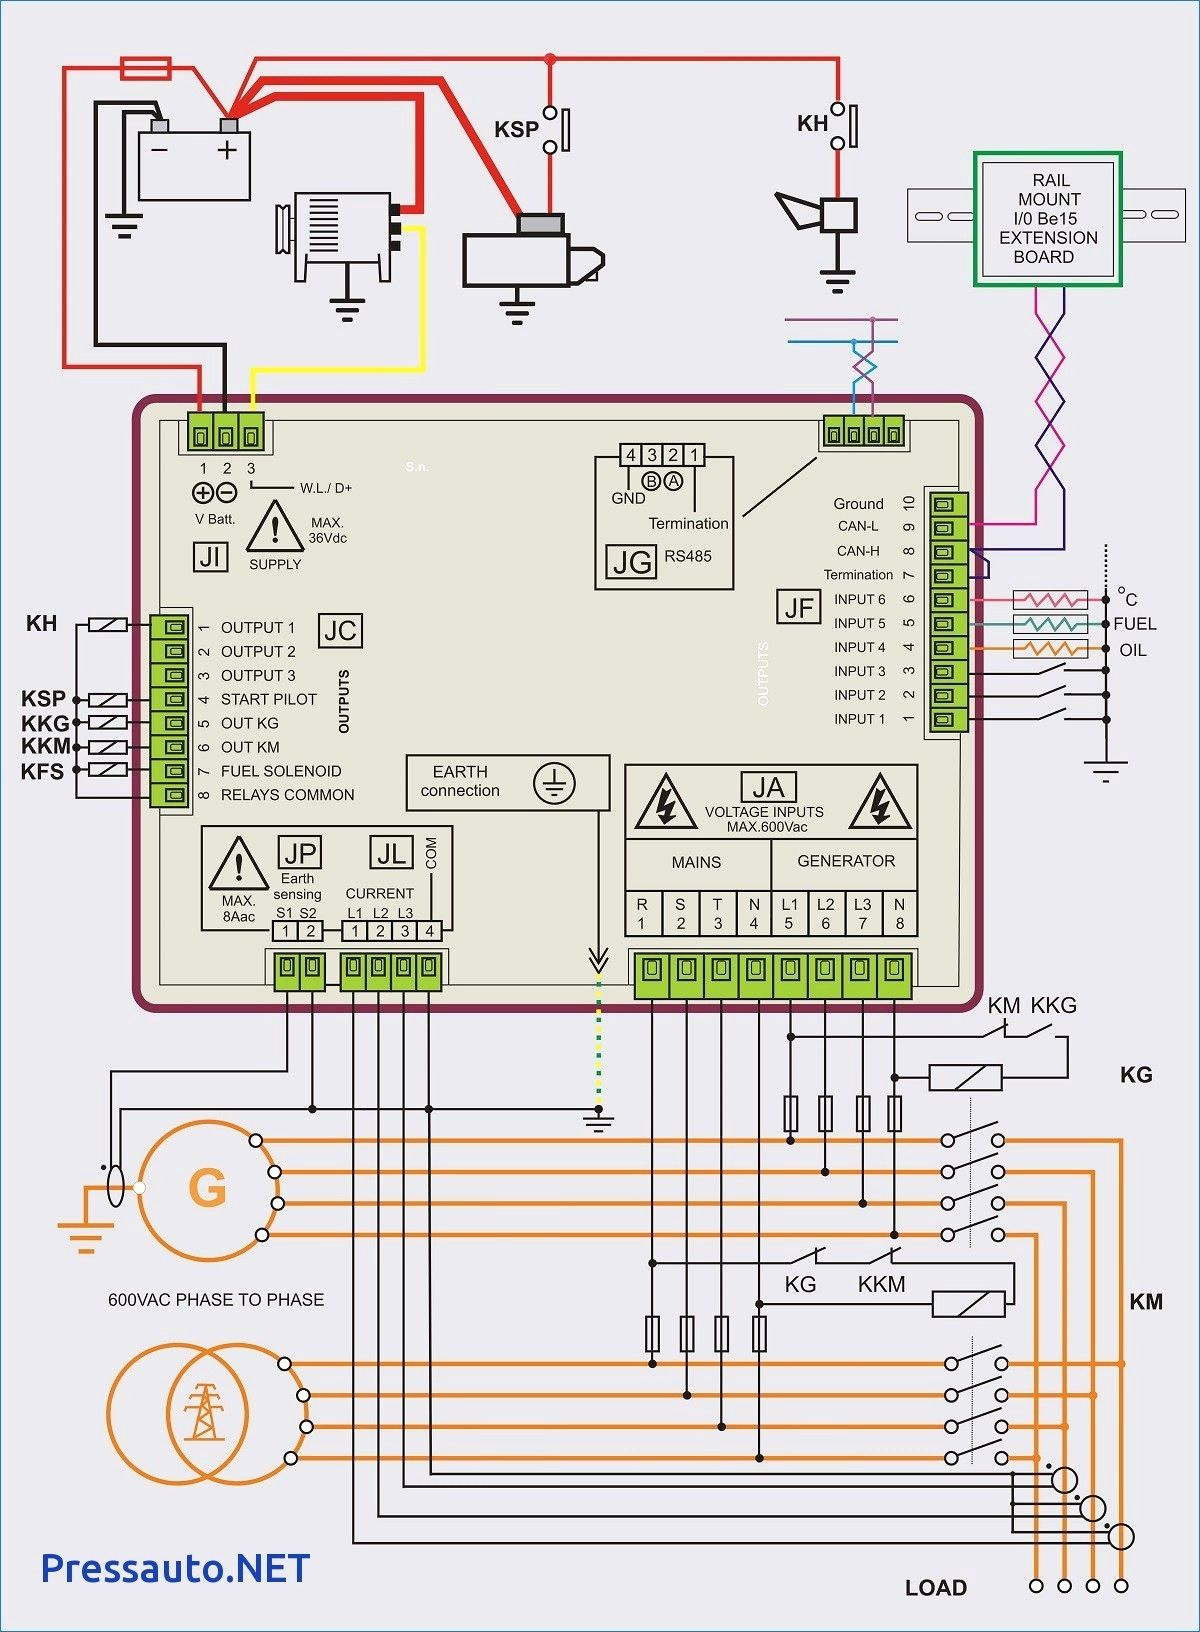 60 Lovely 200 Amp Transfer Switch Wiring Diagram Images | Wsmce - Generac 100 Amp Automatic Transfer Switch Wiring Diagram